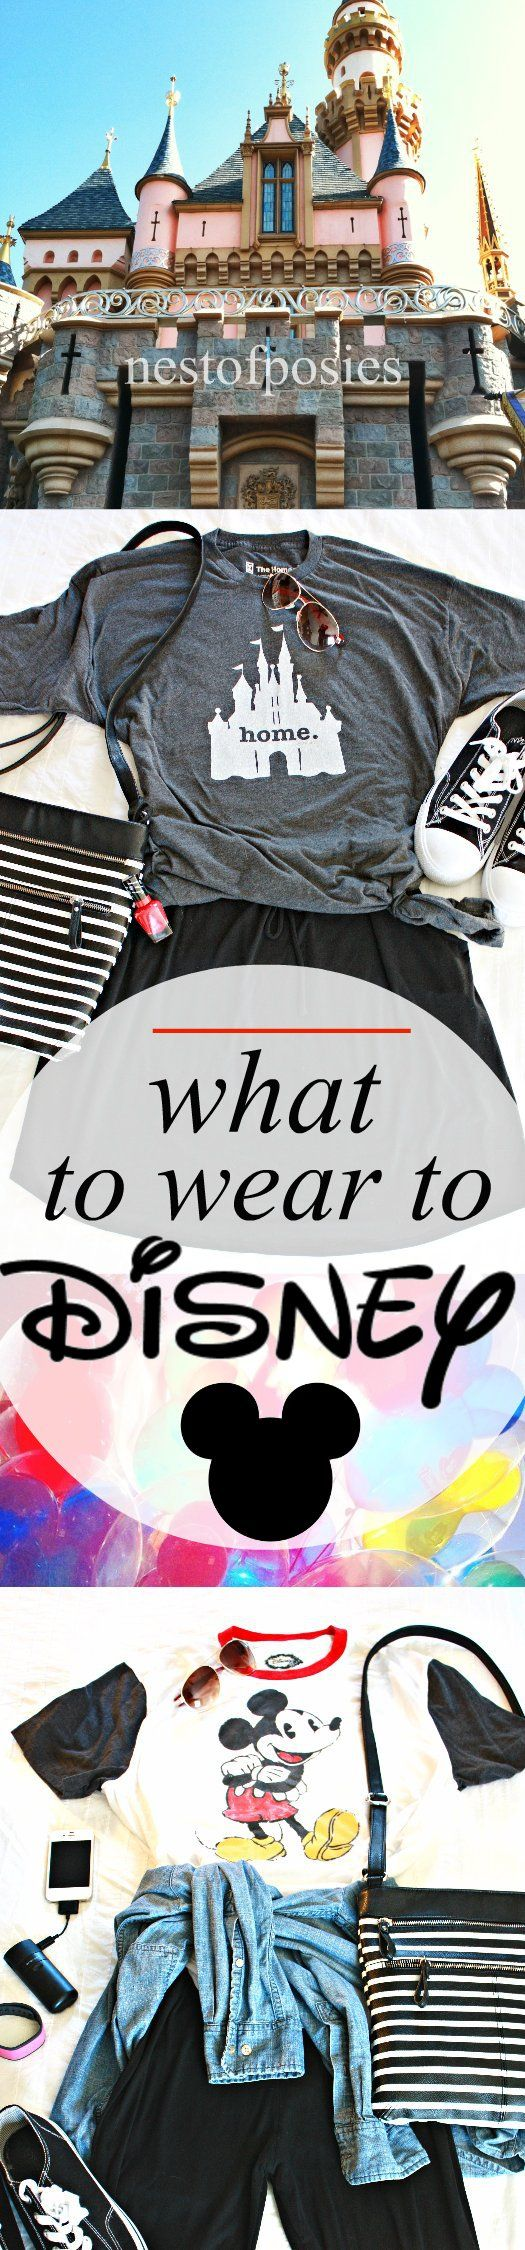 How to scrapbook disney vacation - What To Wear To Disney